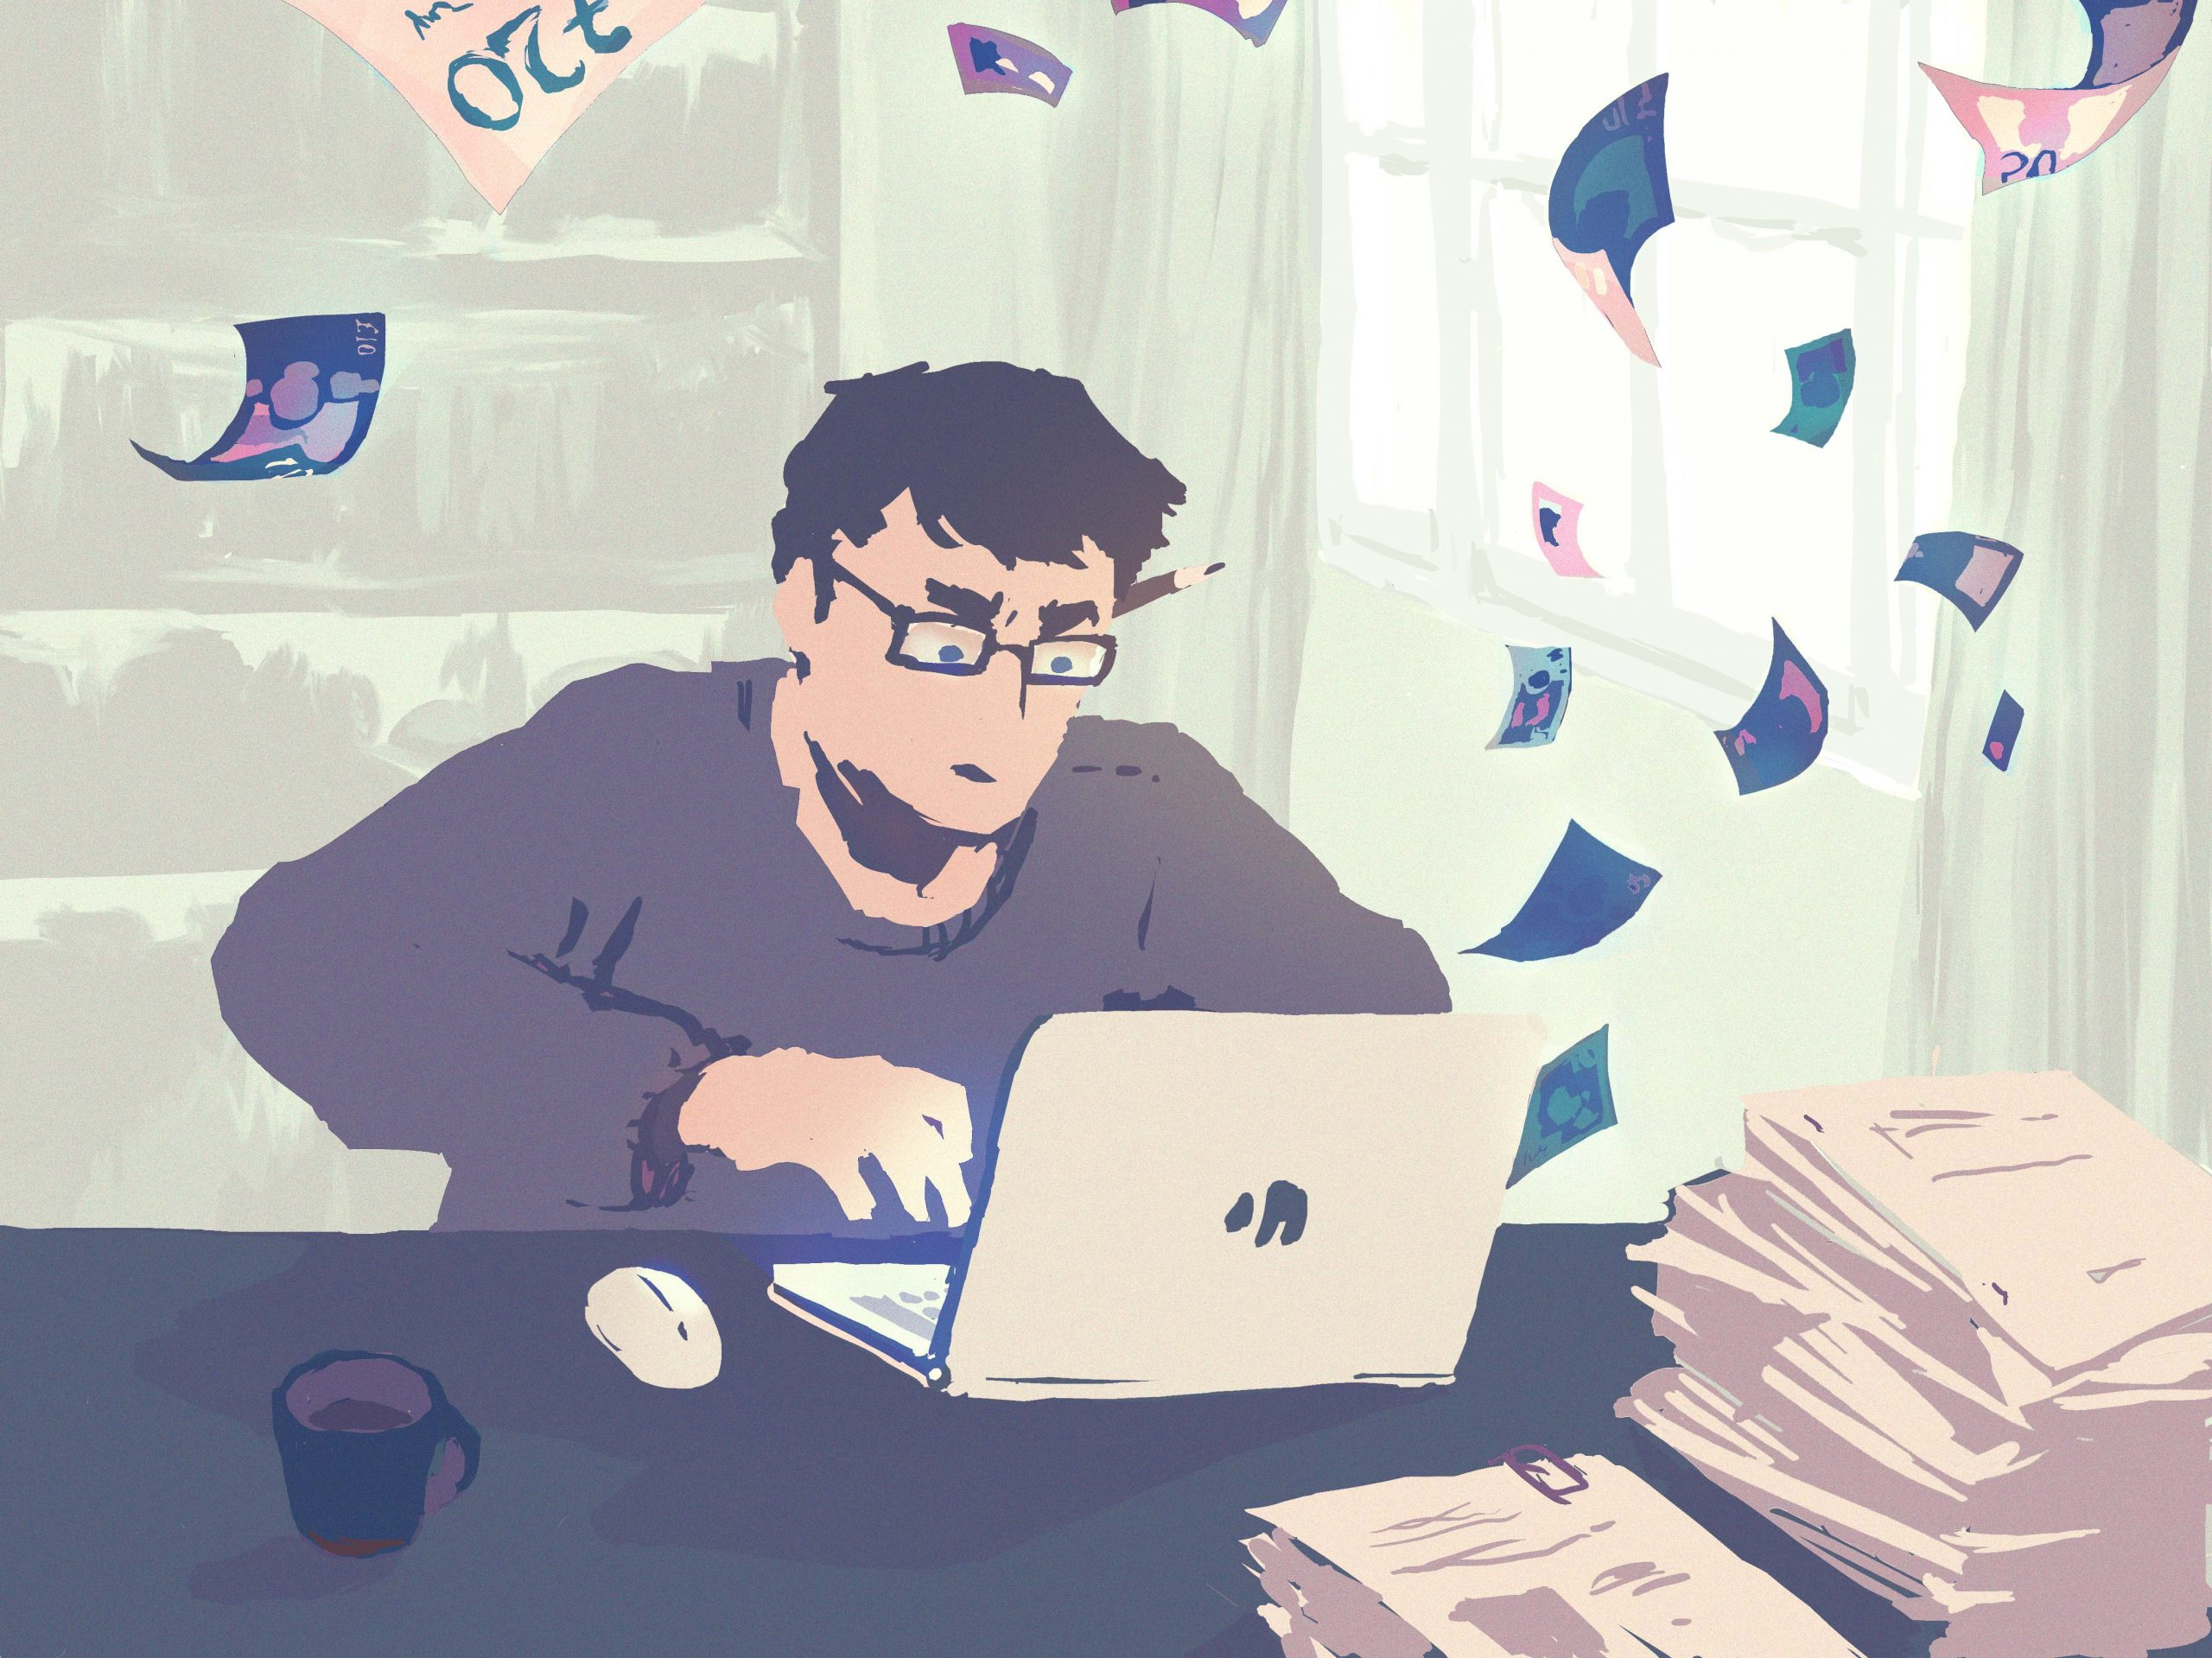 How to earn good money as a freelance journalist